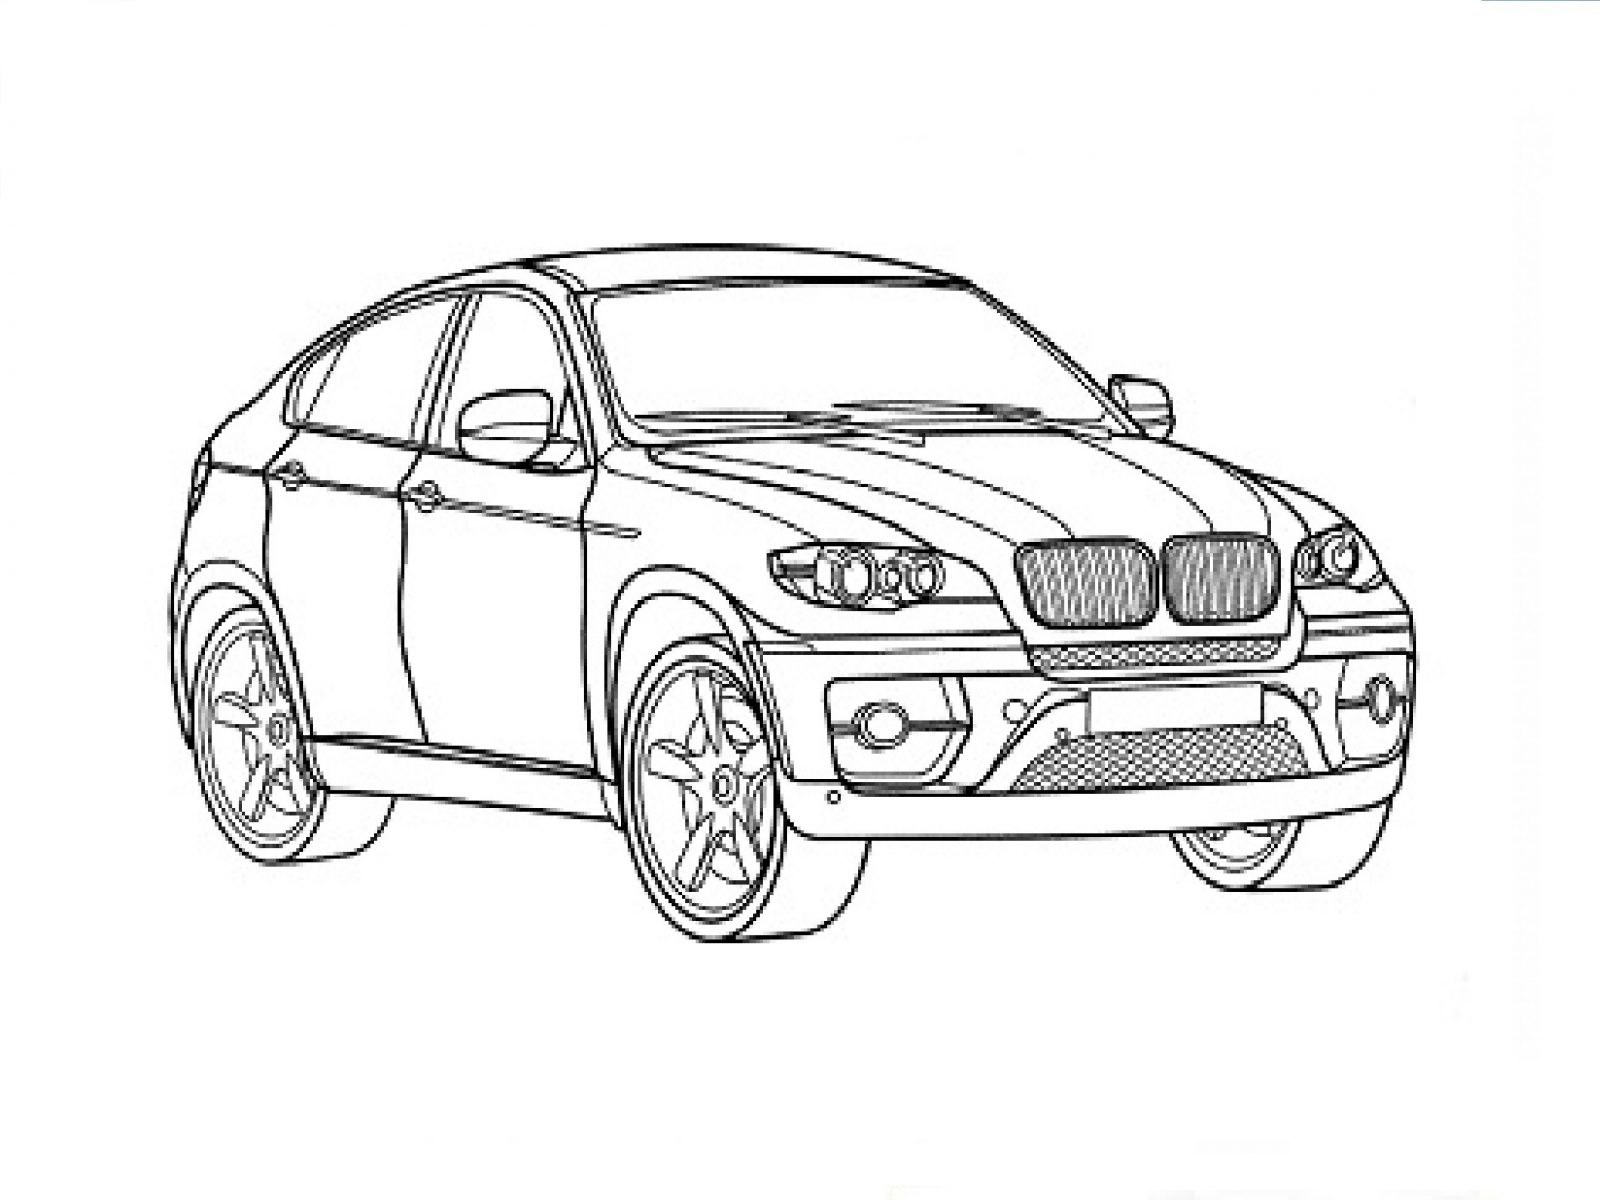 Car Pencil Sketch Drawing At Getdrawings